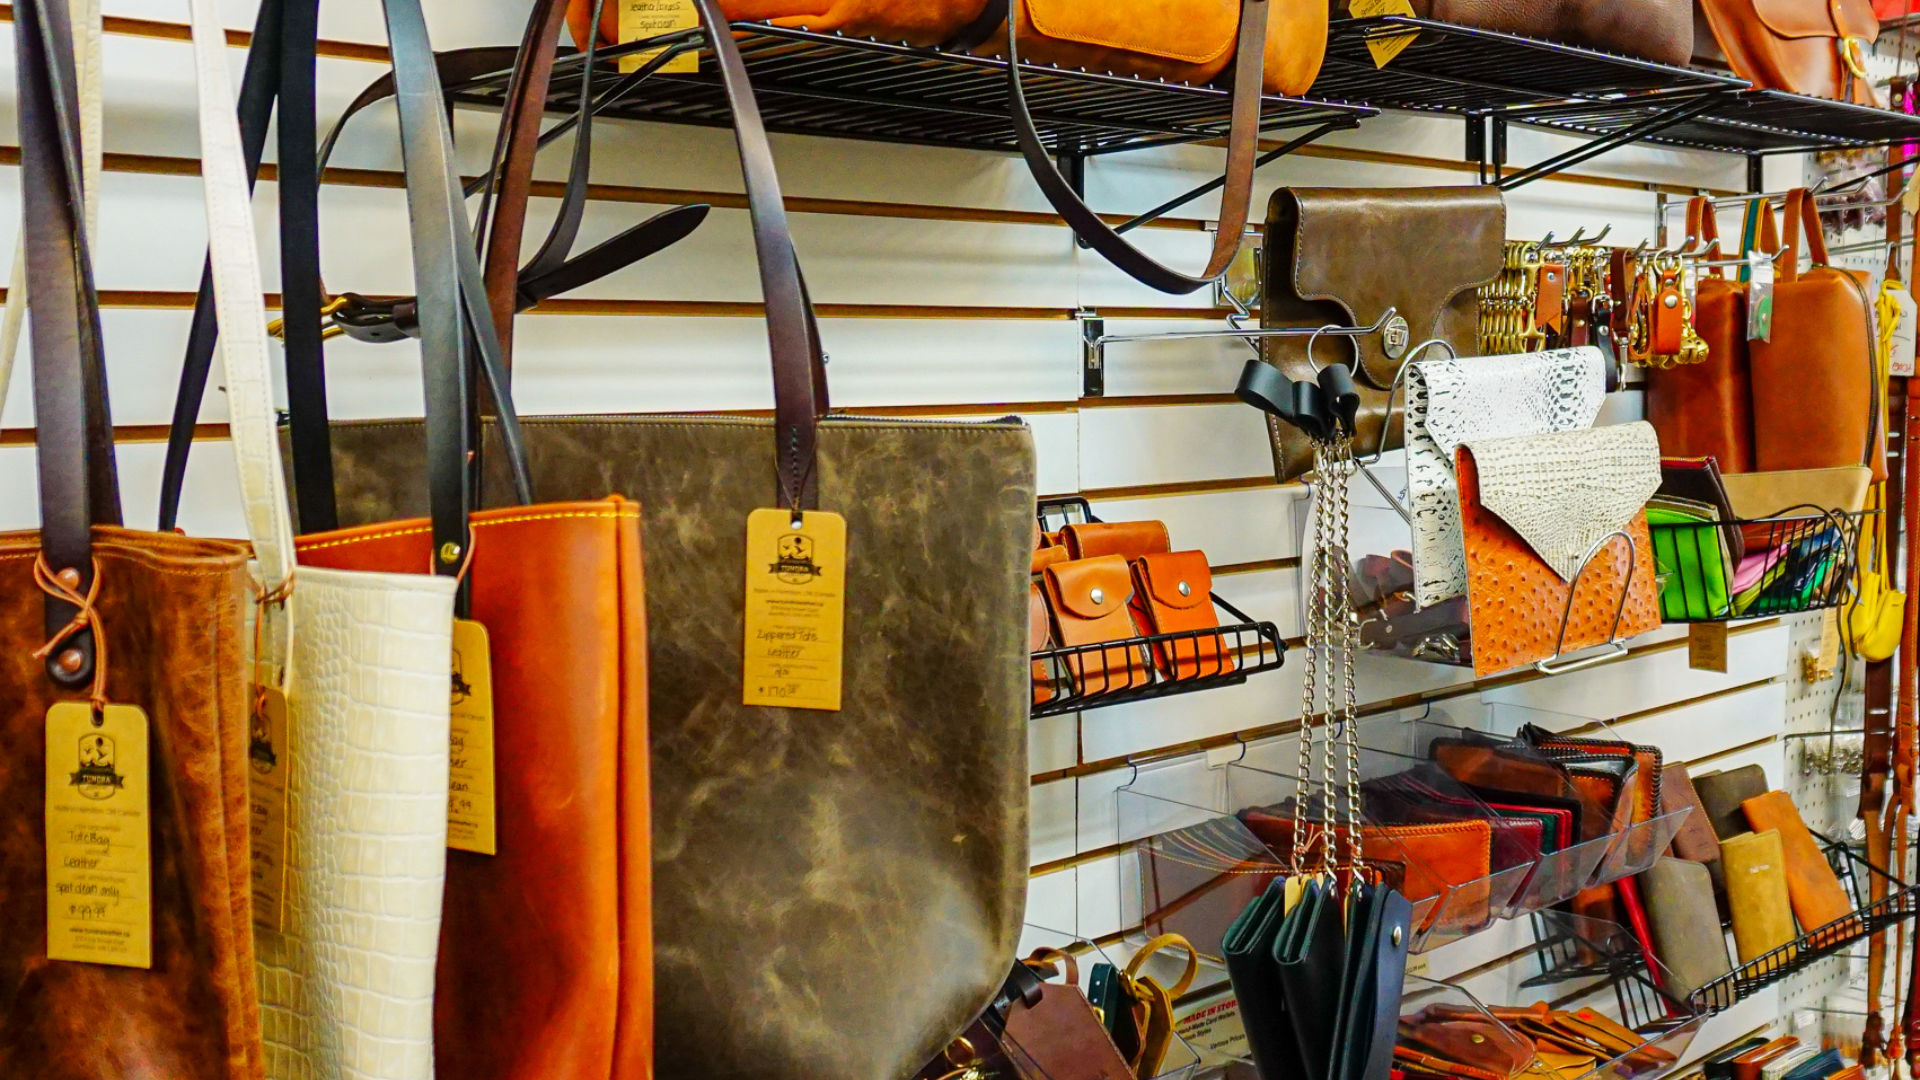 A rack of hand made leather bags, purses, and wallets